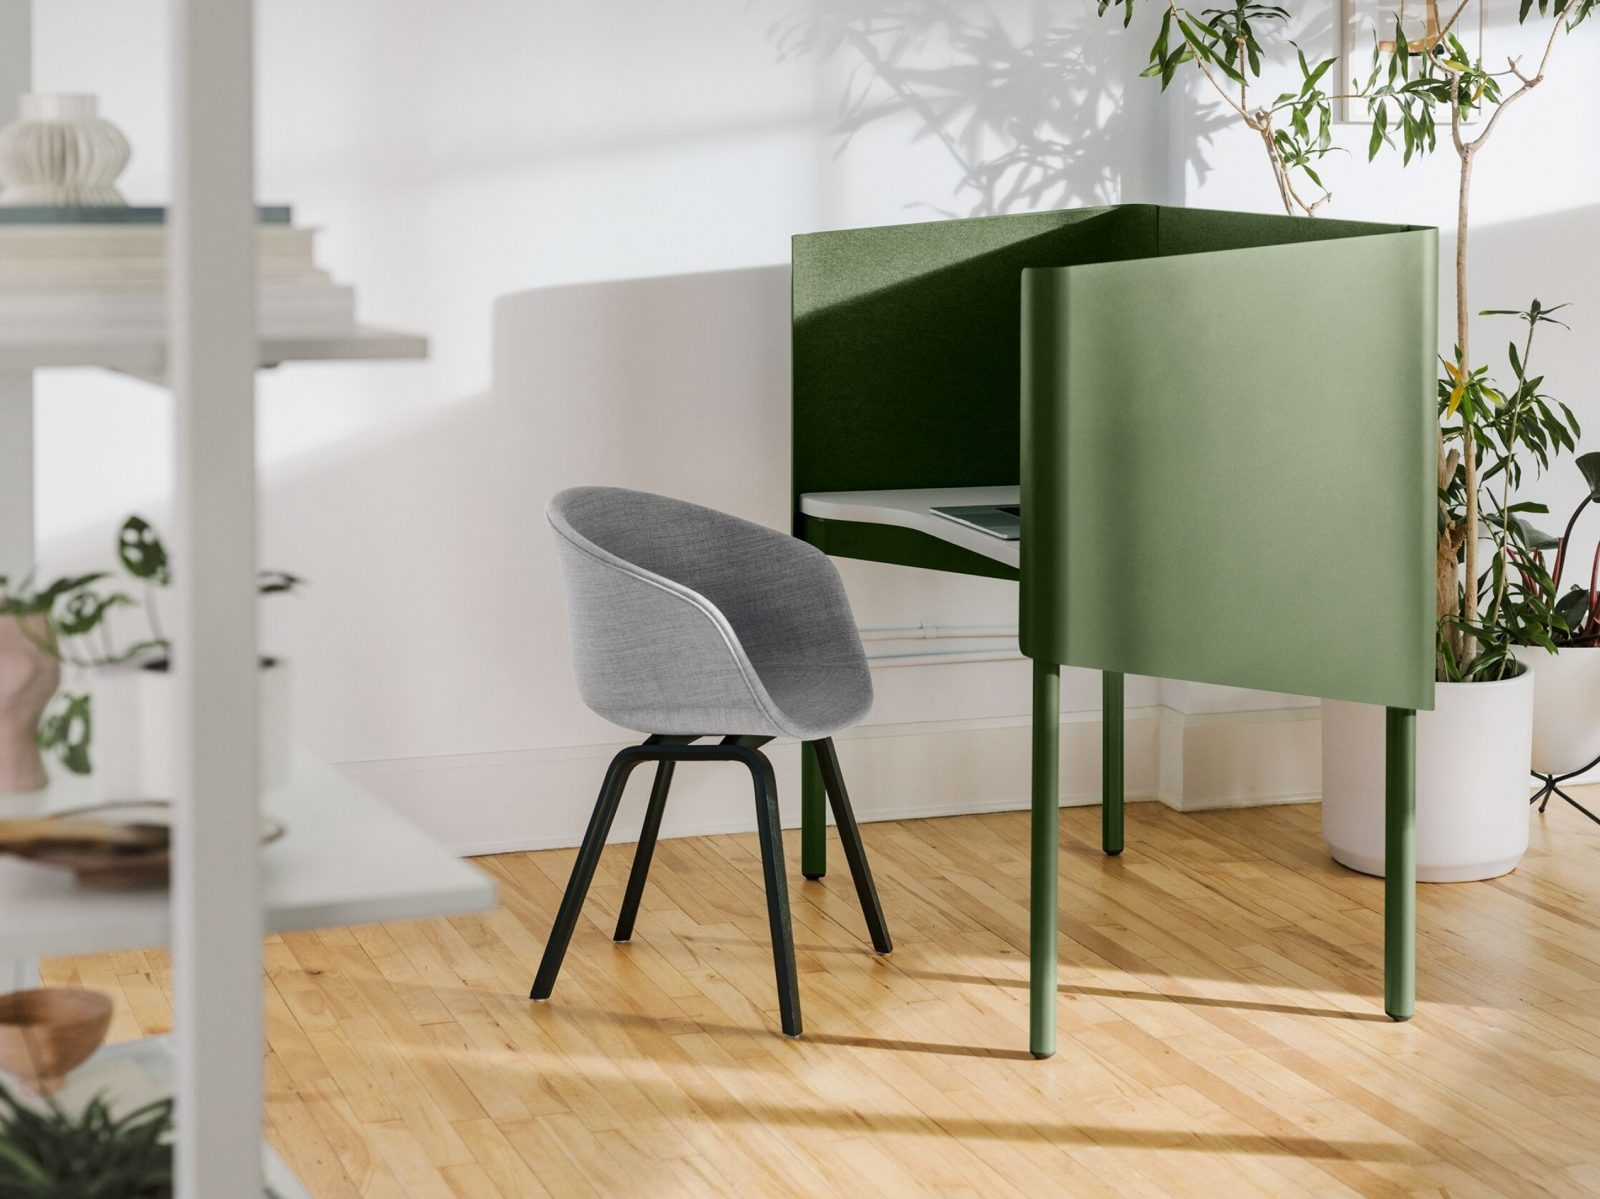 Oe1 product gallery 13